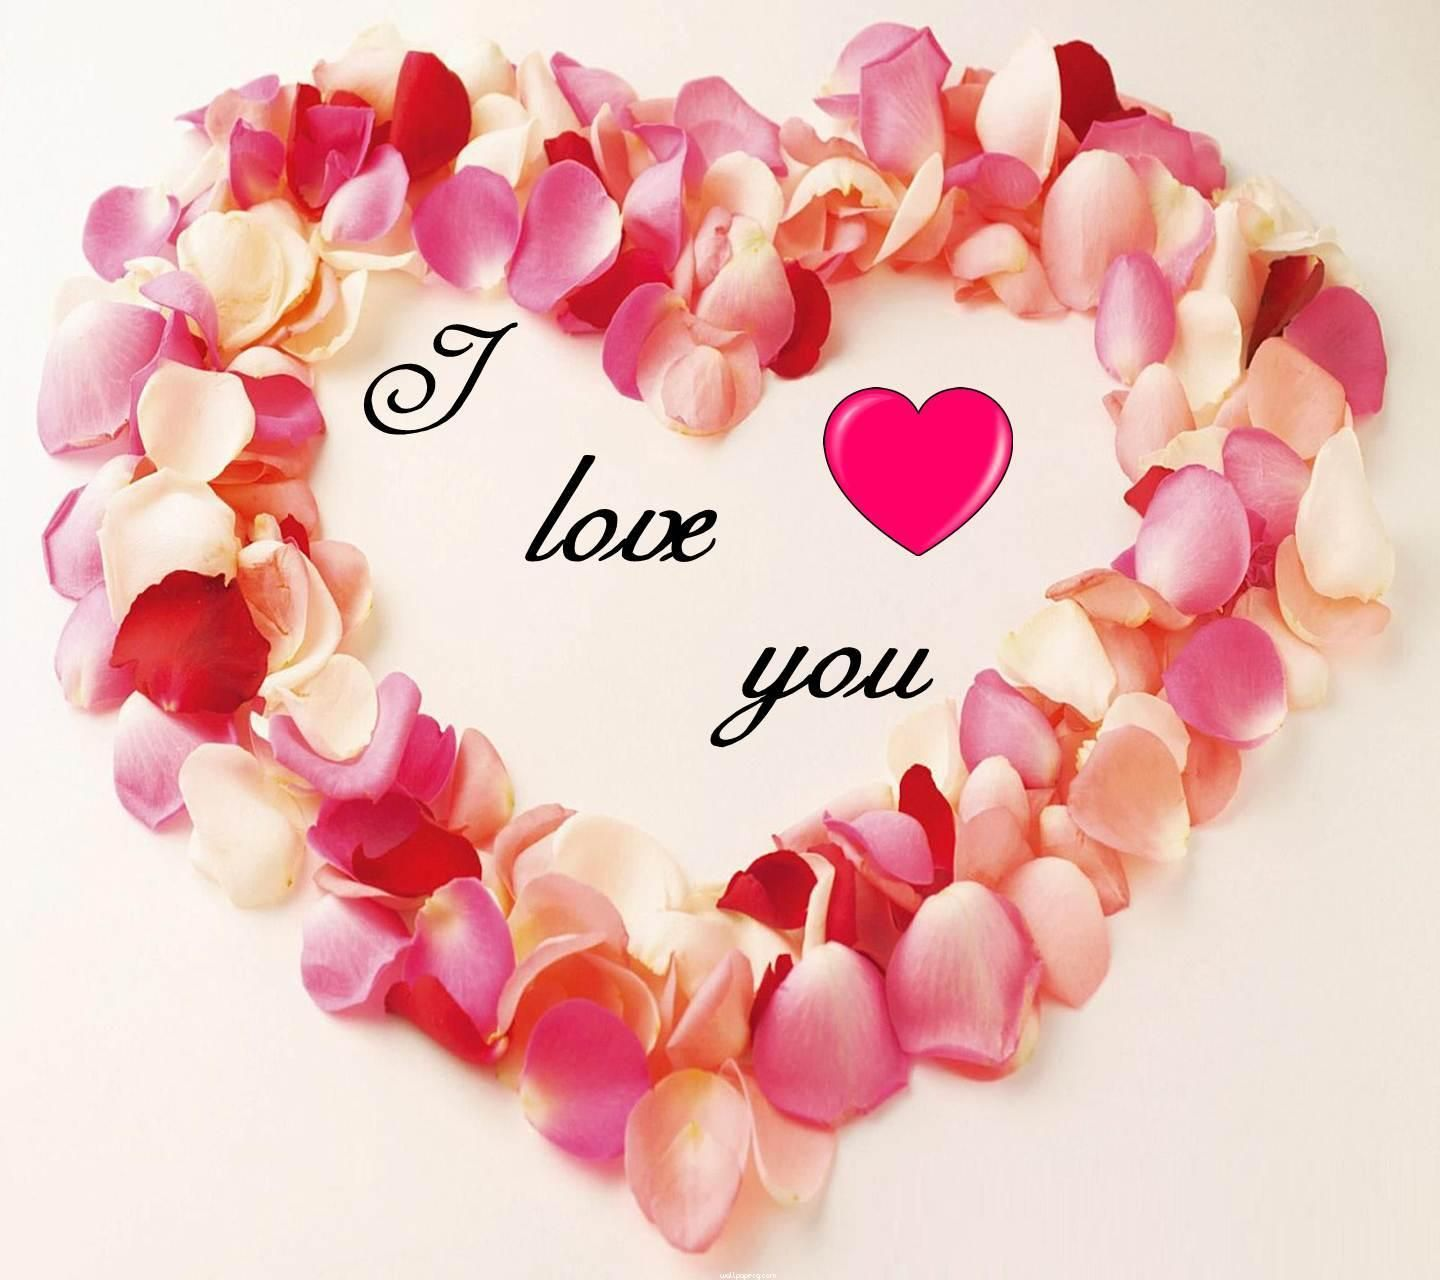 I Love You Images Love You Images Hd Wallpapers For Mobile